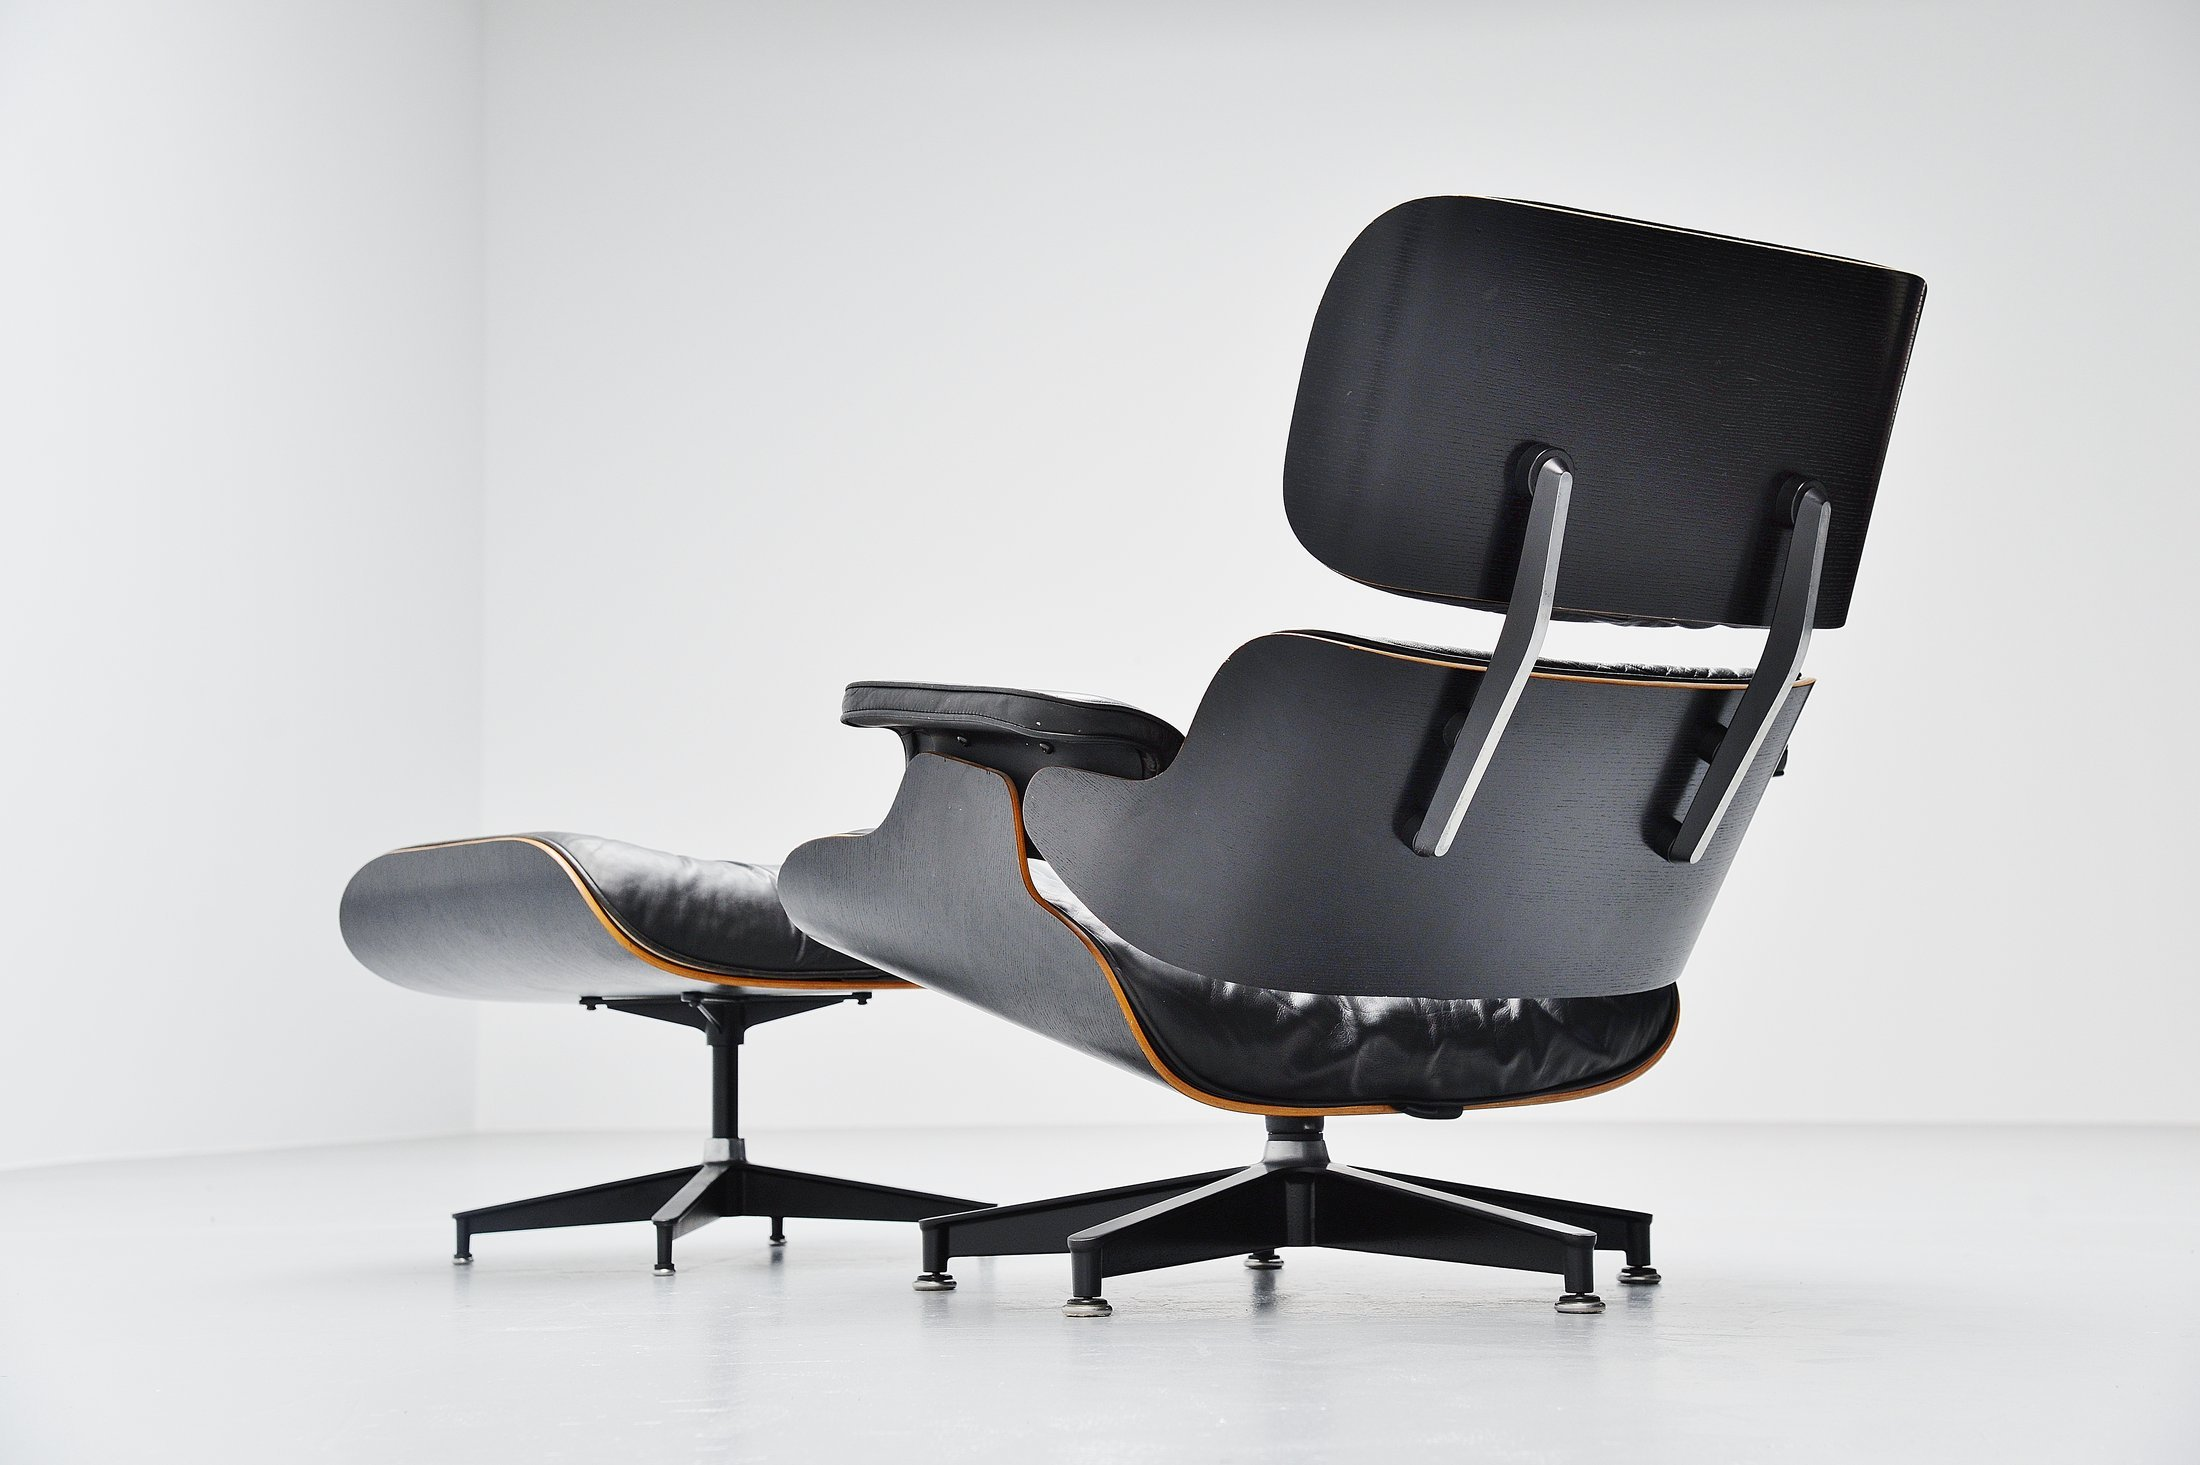 Terrific Charles And Ray Eames Lounge Chair Herman Miller Usa 1956 Lamtechconsult Wood Chair Design Ideas Lamtechconsultcom